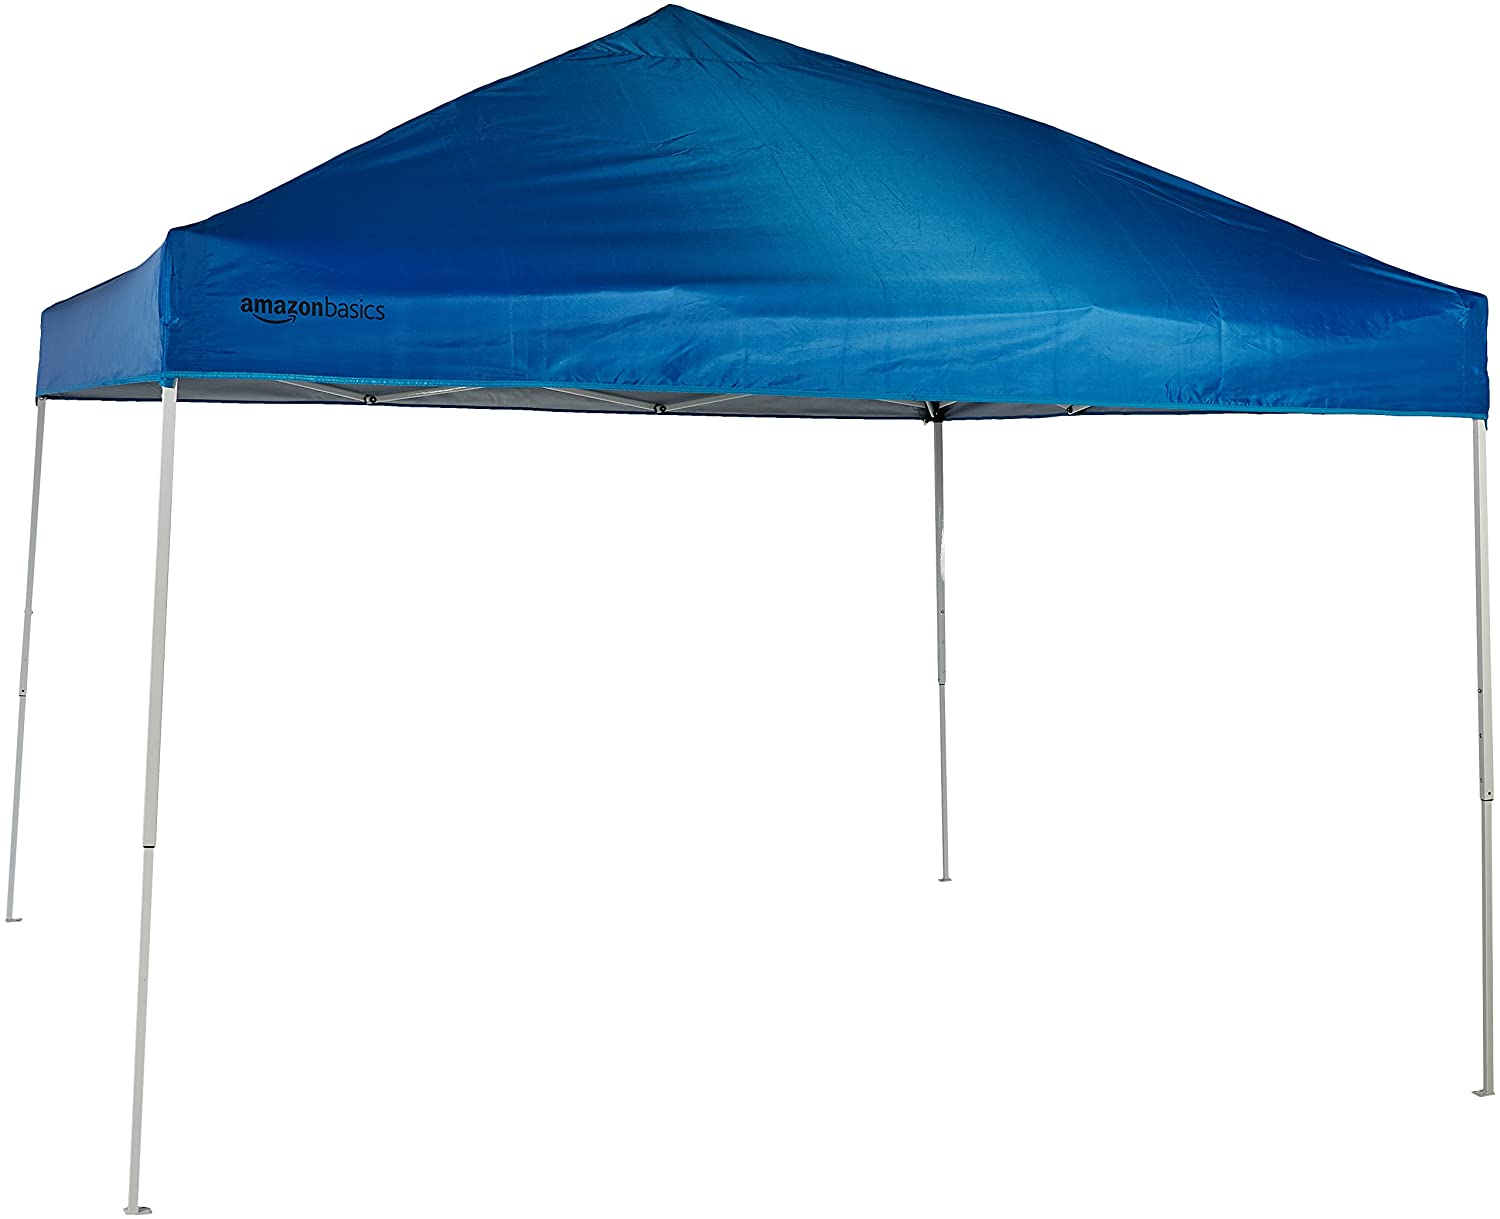 AmazonBasics Pop-Up Canopy Tent - 10' x 10', Blue